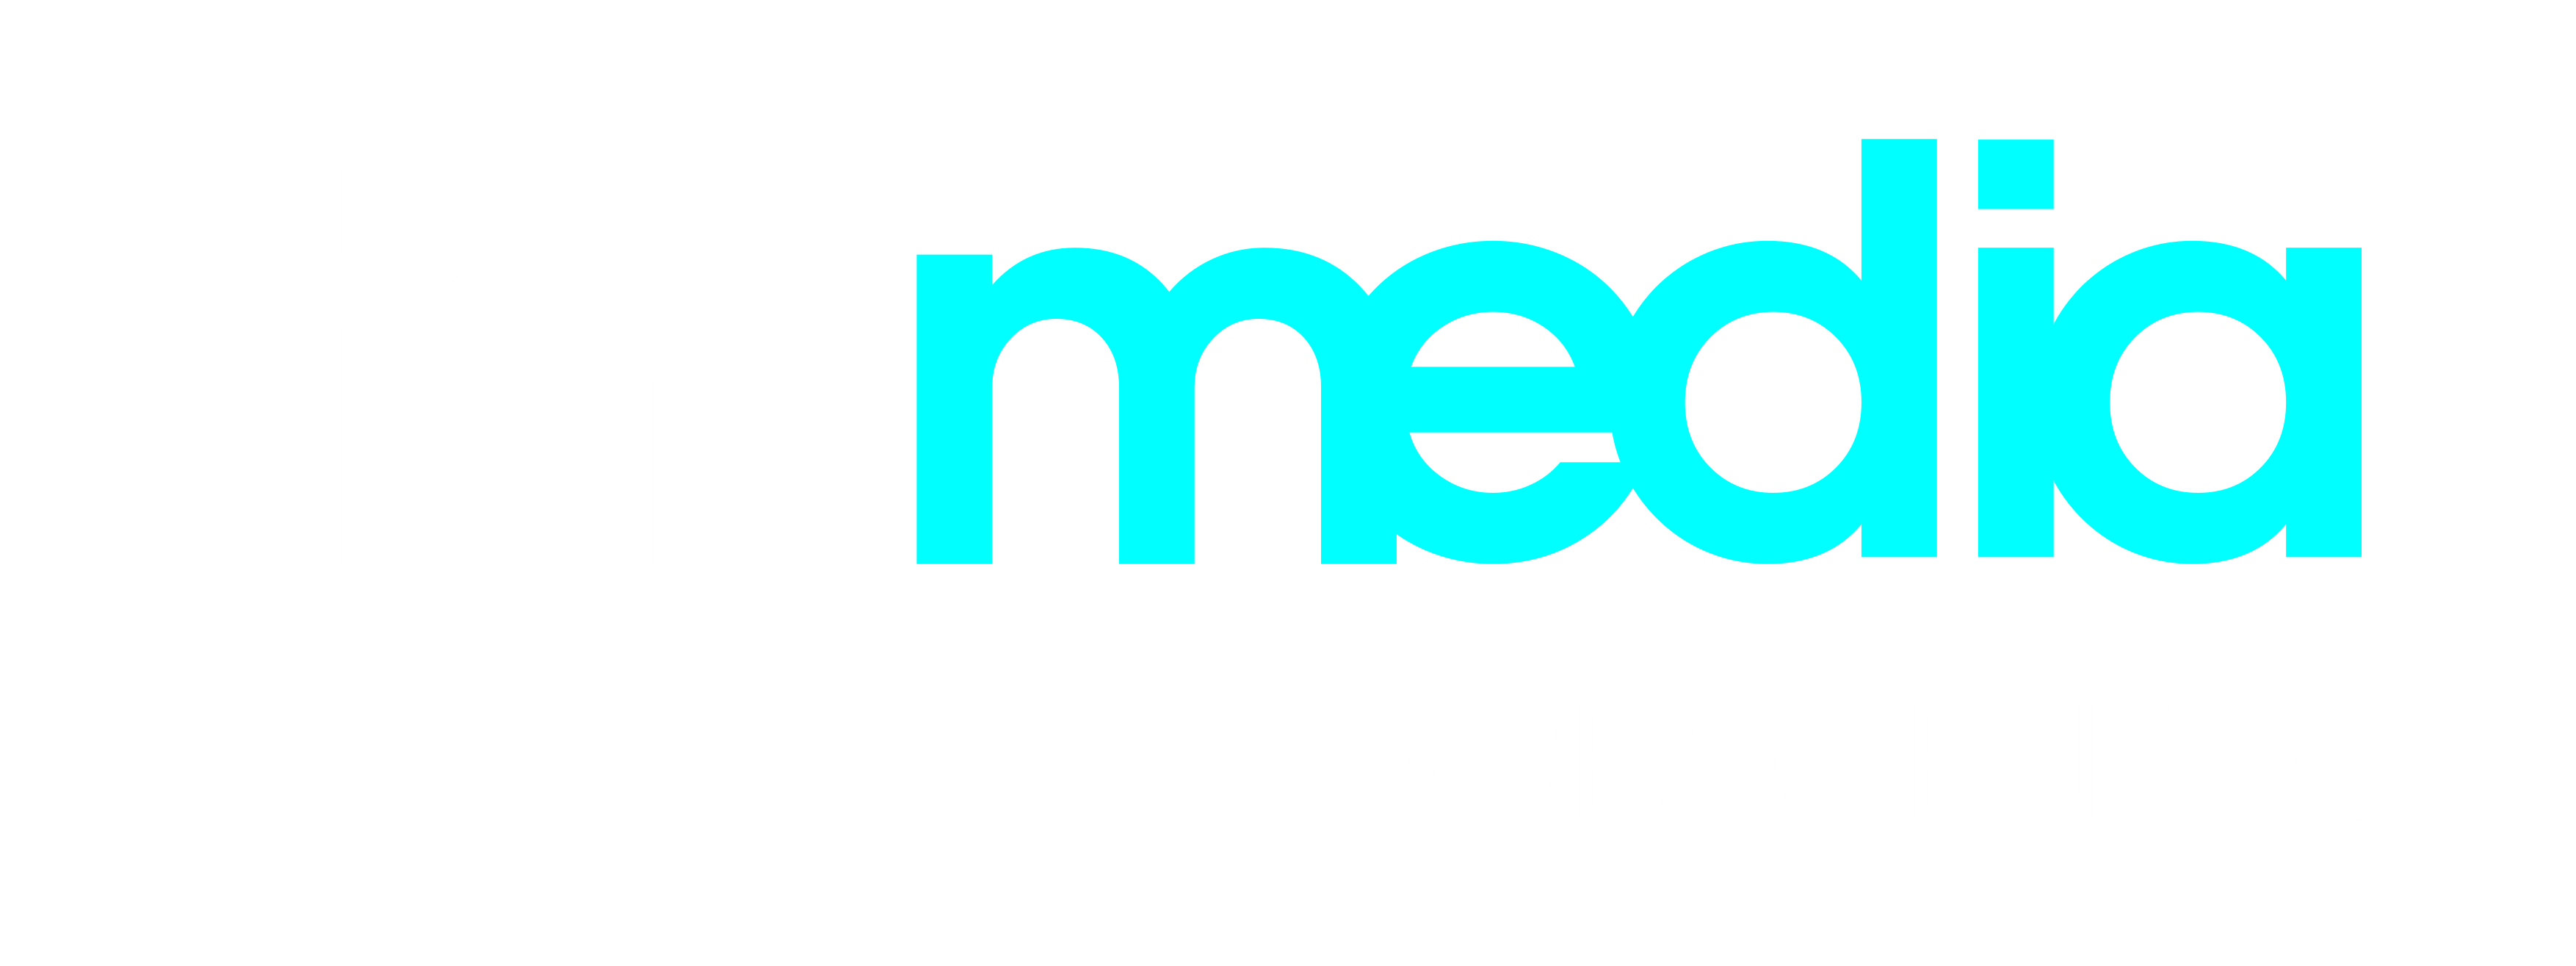 TM-Media e.U. - Werbeagentur